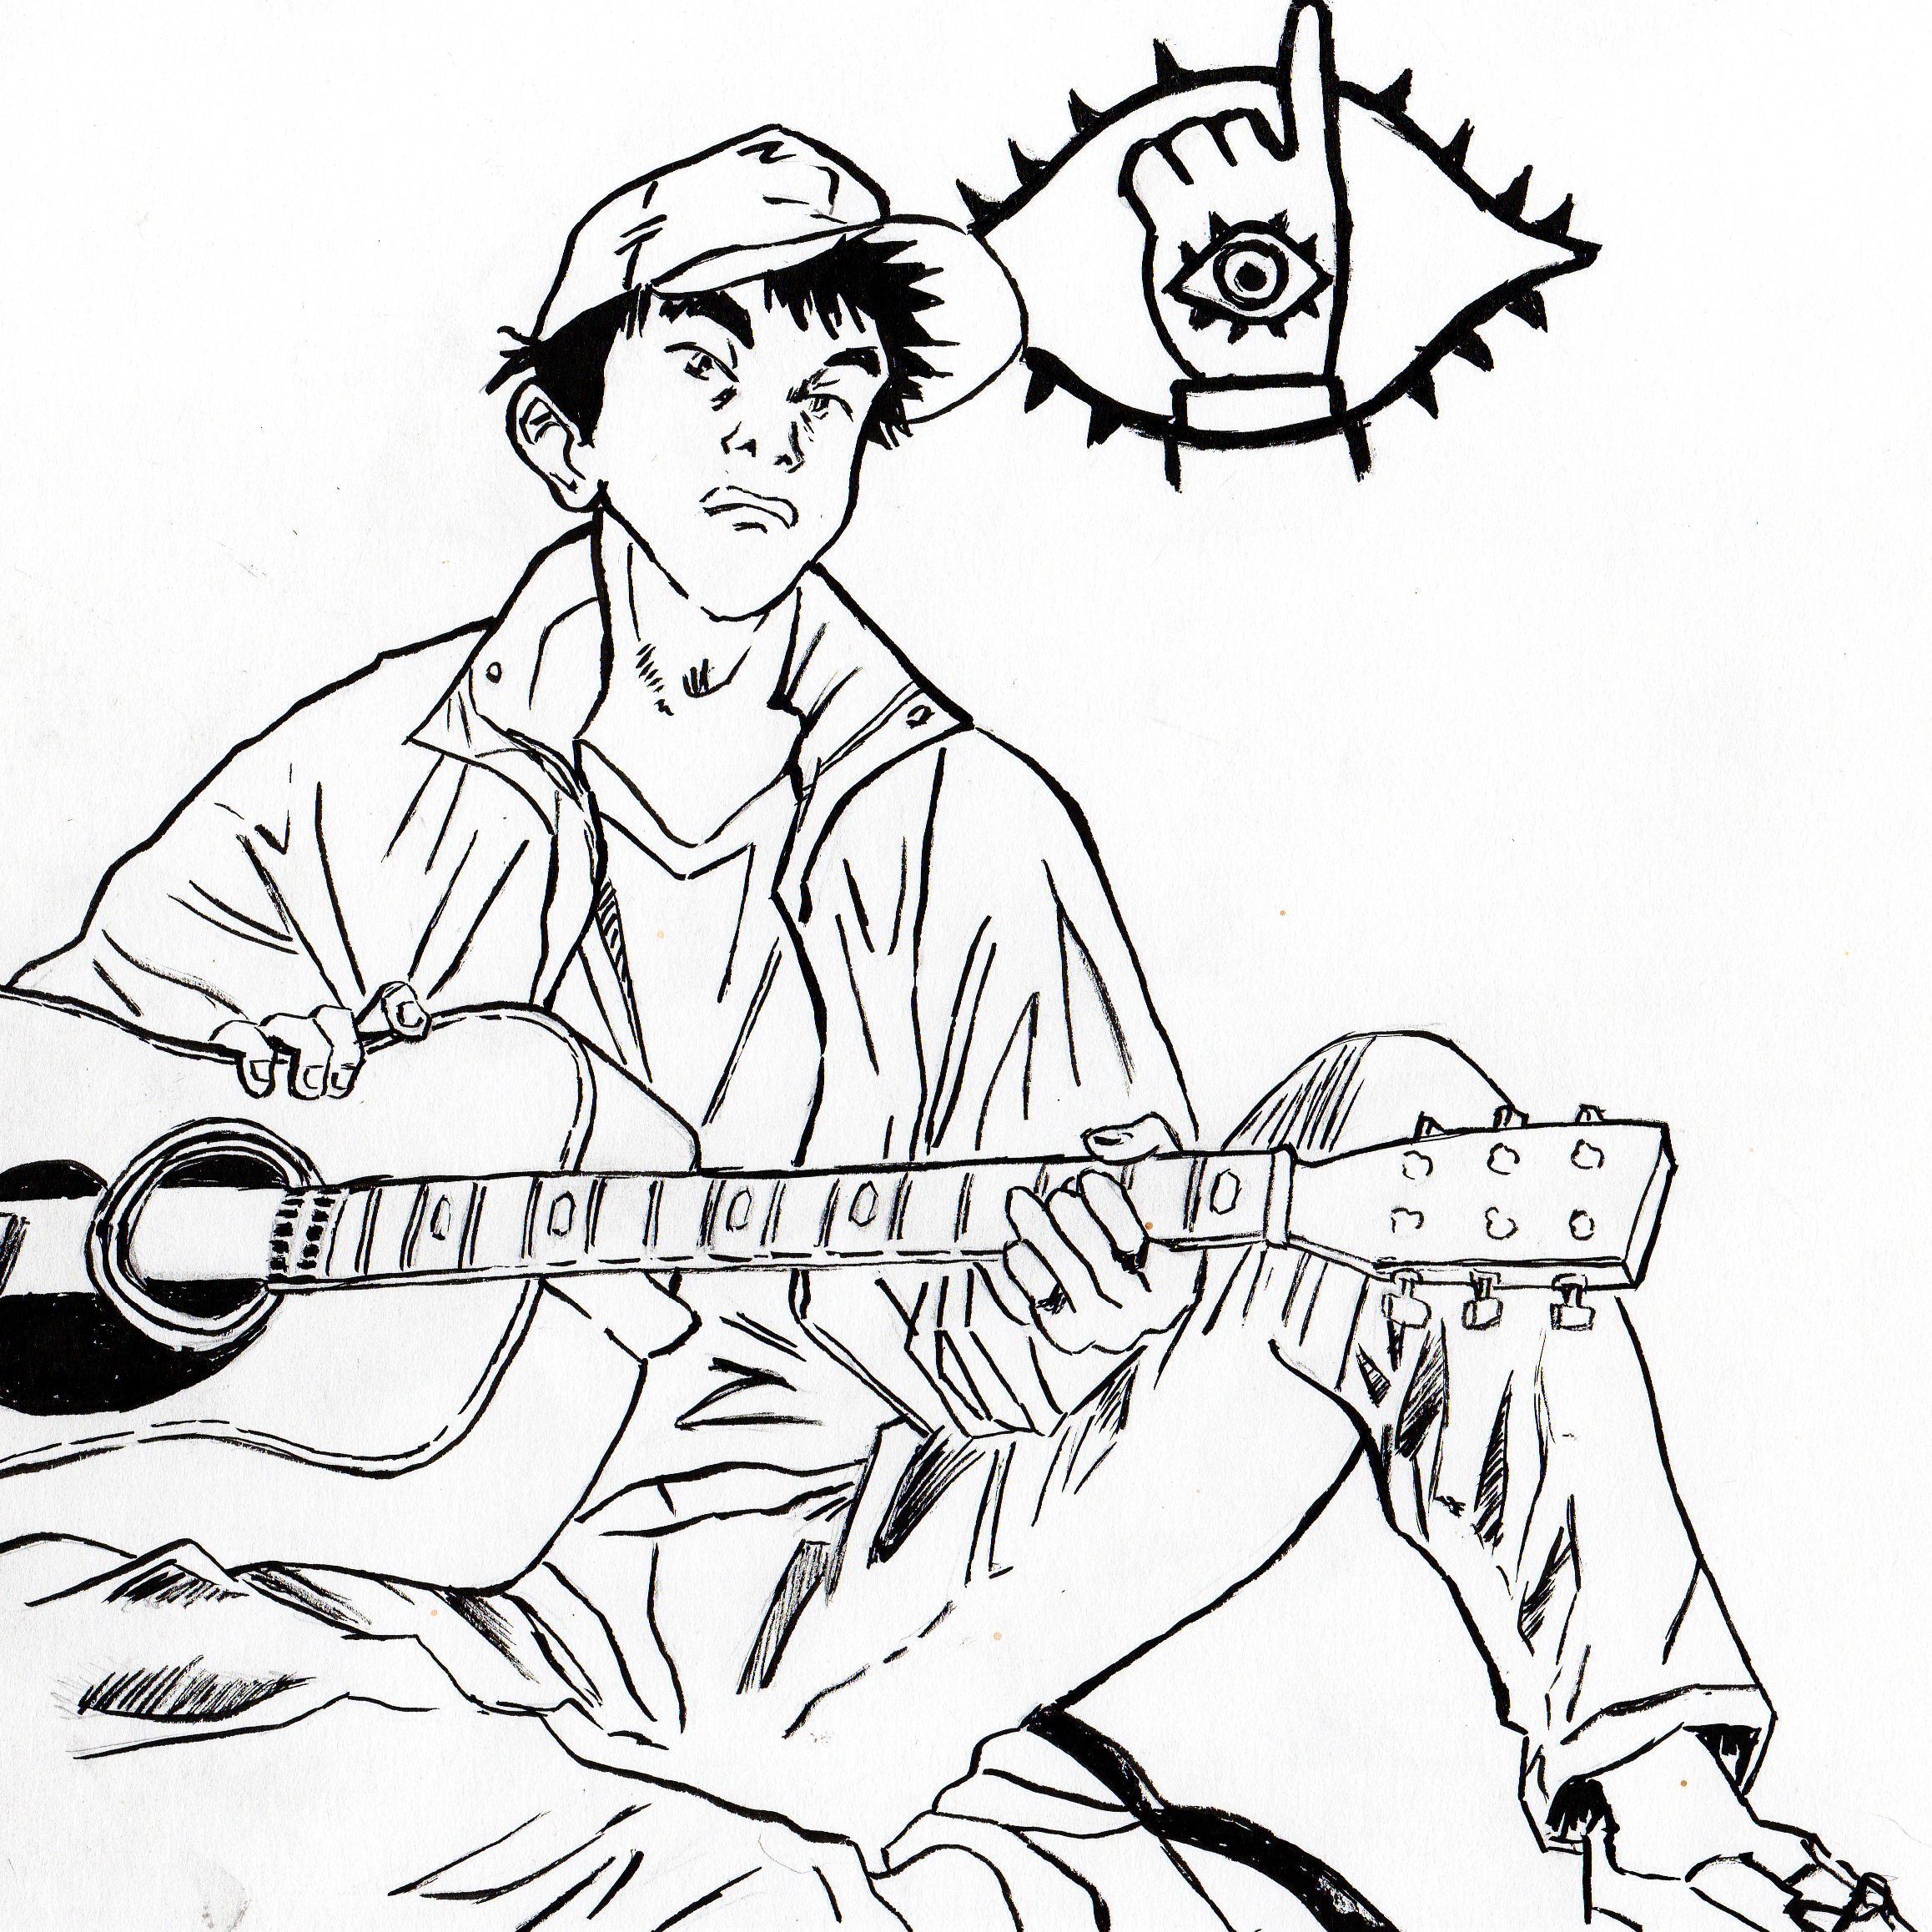 Kenji from 20th Century boys by PedroTorres on Newgrounds